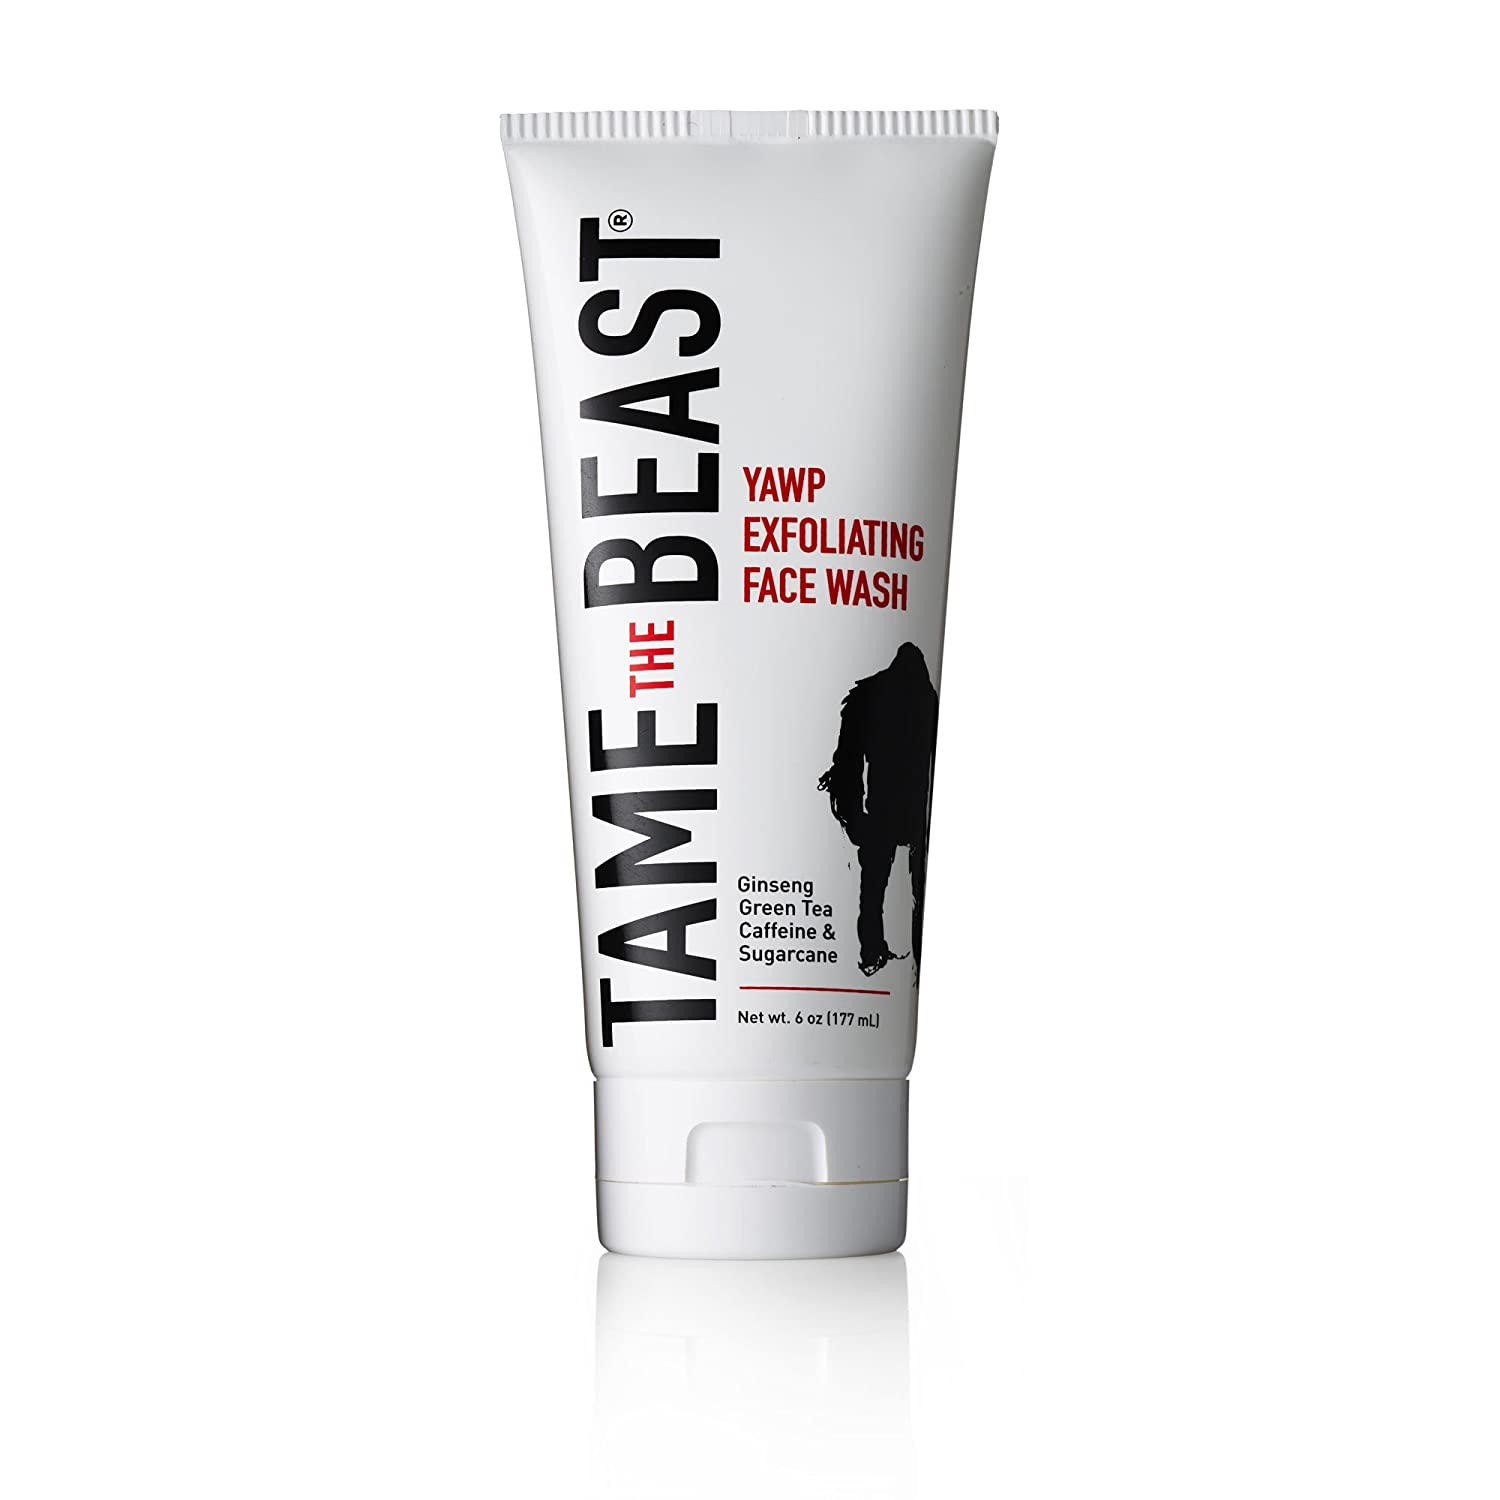 Men's Exfoliating Face Wash Tingle Facial Scrub with Peppermint, Ginseng, Green Tea, Caffeine, Pomegranate, Apple, Sugarcane, Vitamin E - YAWP by TAME the BEAST